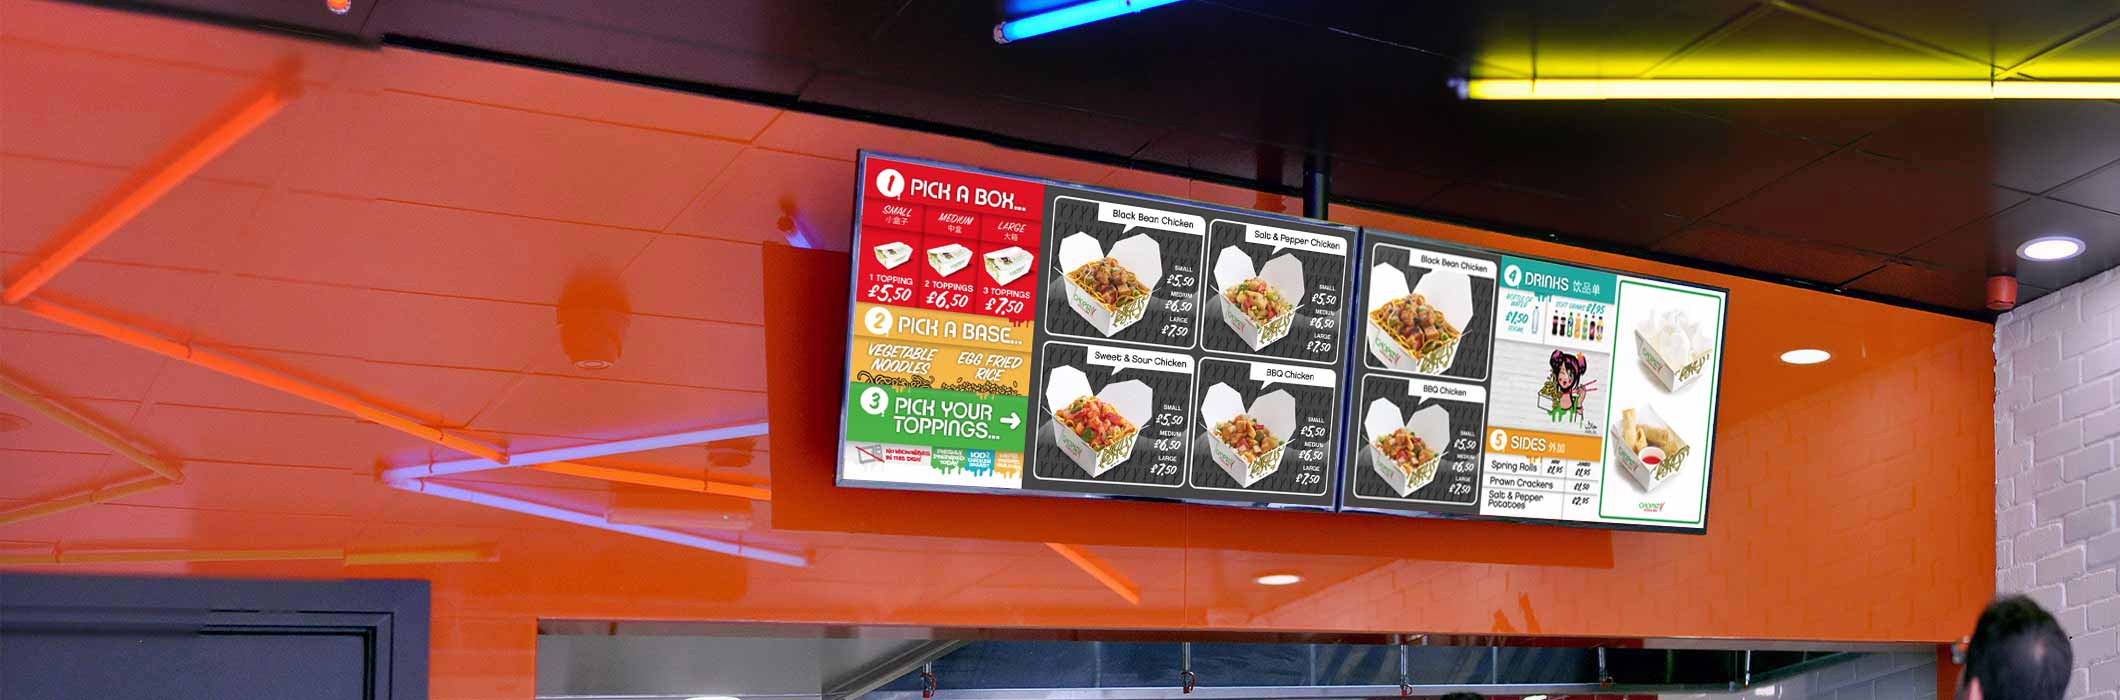 Two digital signage screens at Chopstix restaurant displaying their menu